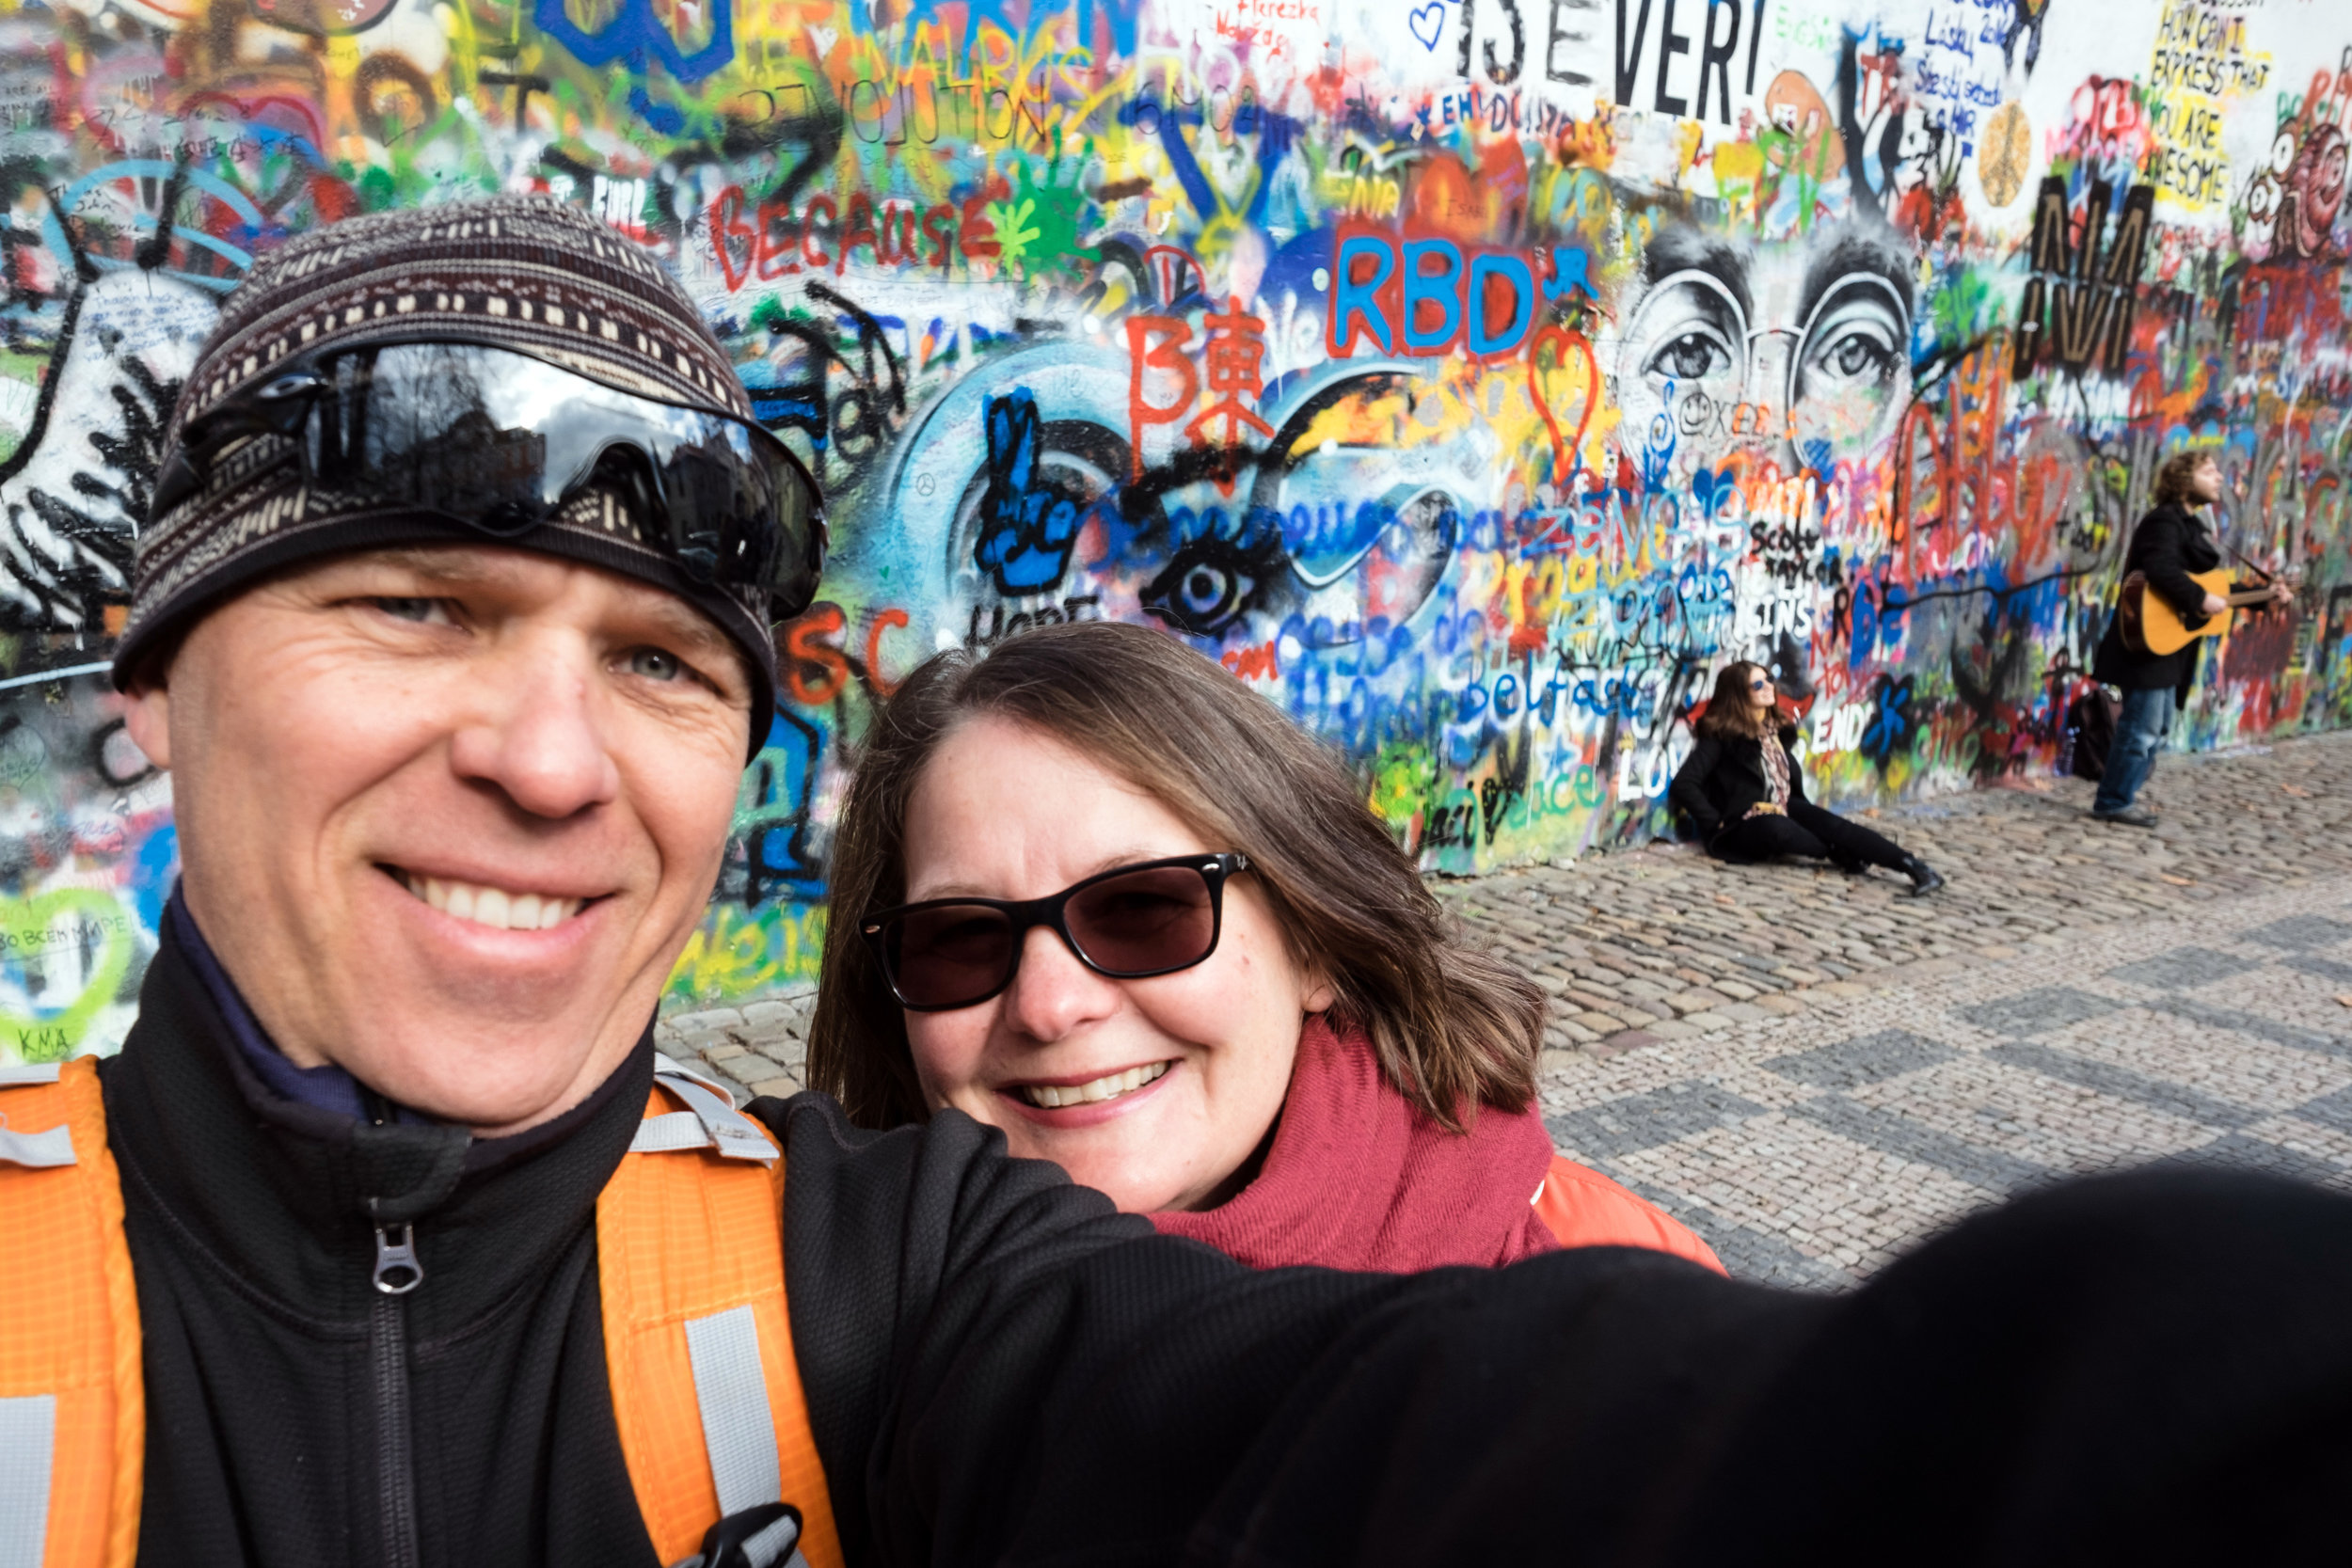 A couple taking a selfie at the John Lennon Wall in Prague